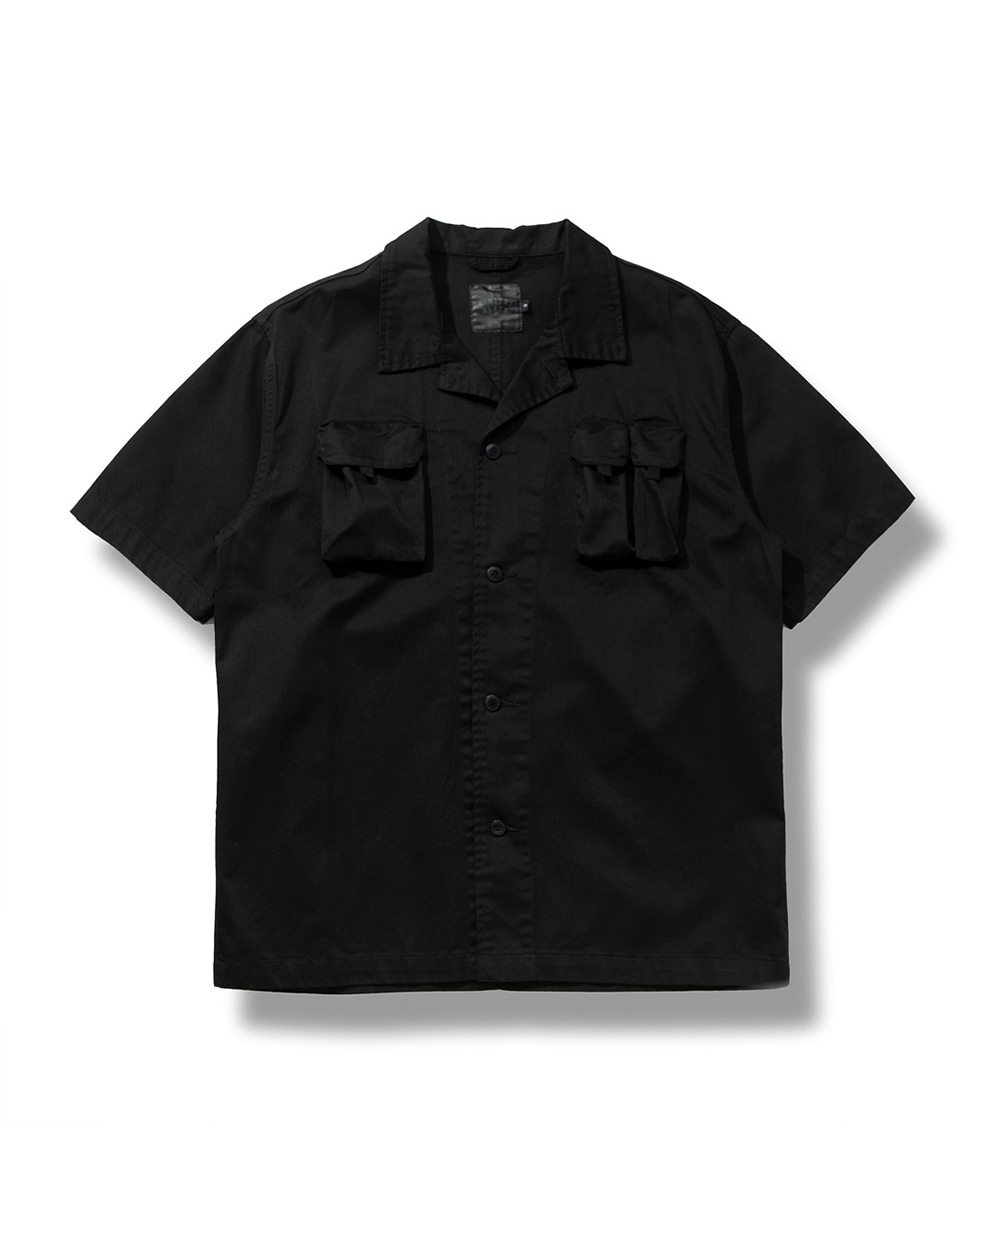 UTILITY REPAIRMAN SHIRTS BLACK